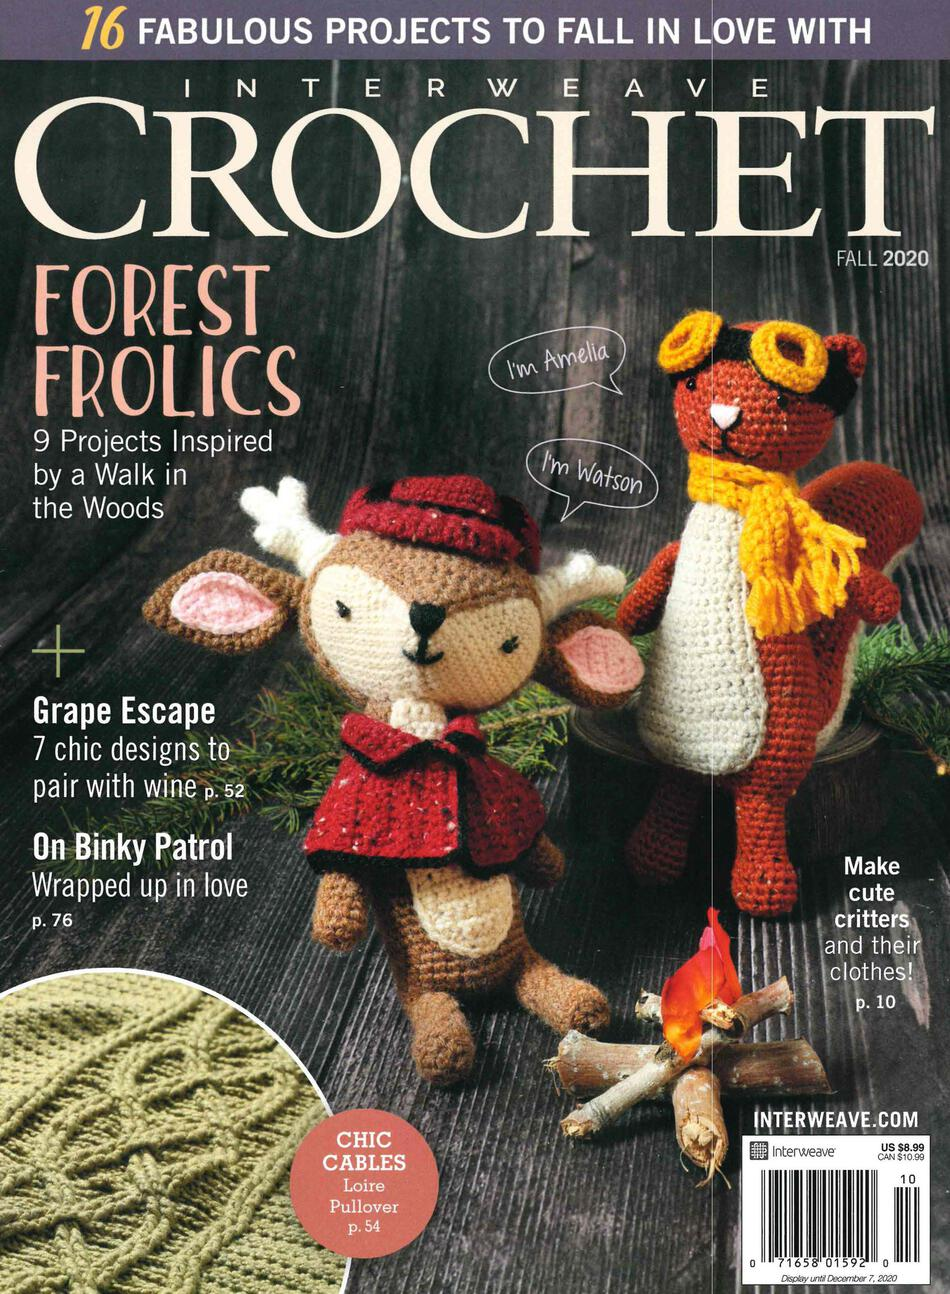 Crochet Magazines Interweave Crochet Fall 2020